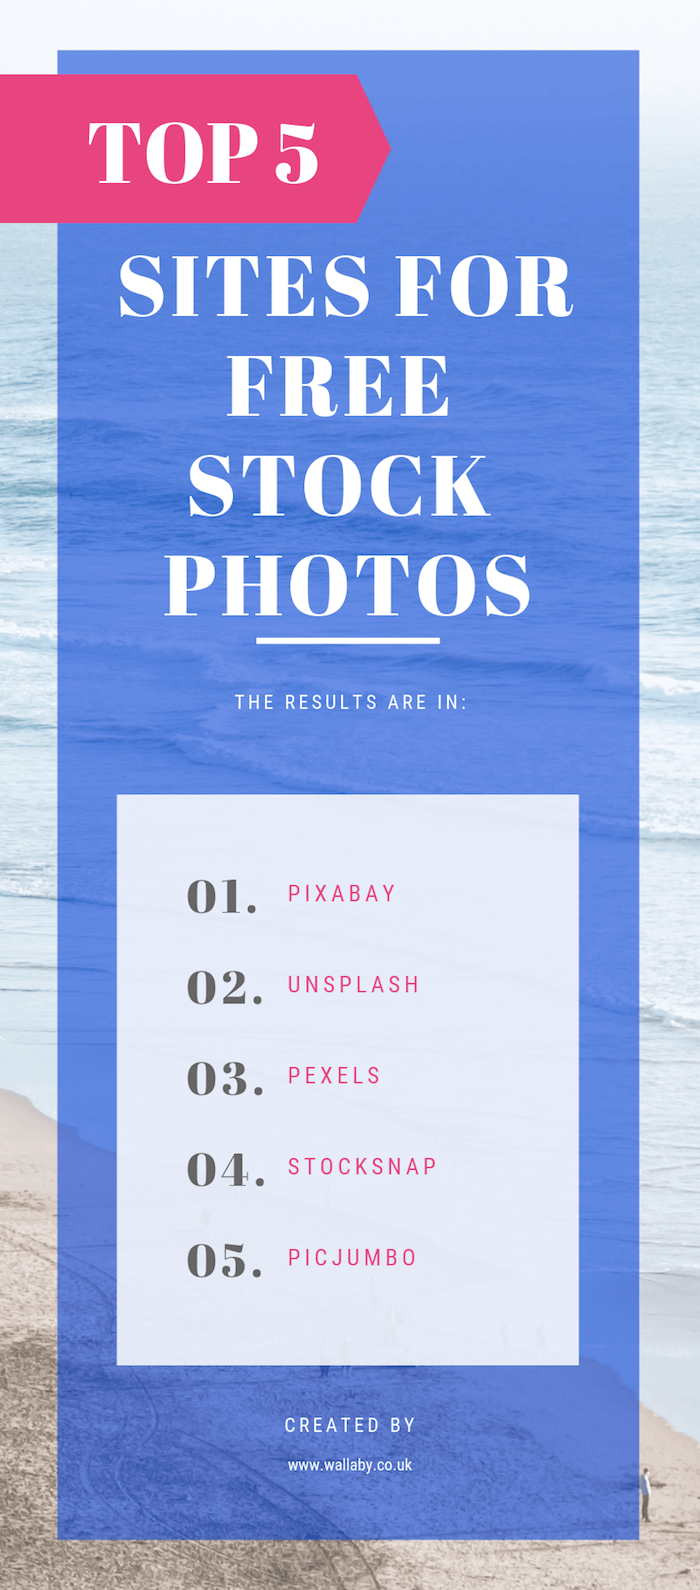 Infographic with list of best sites for free stock photos